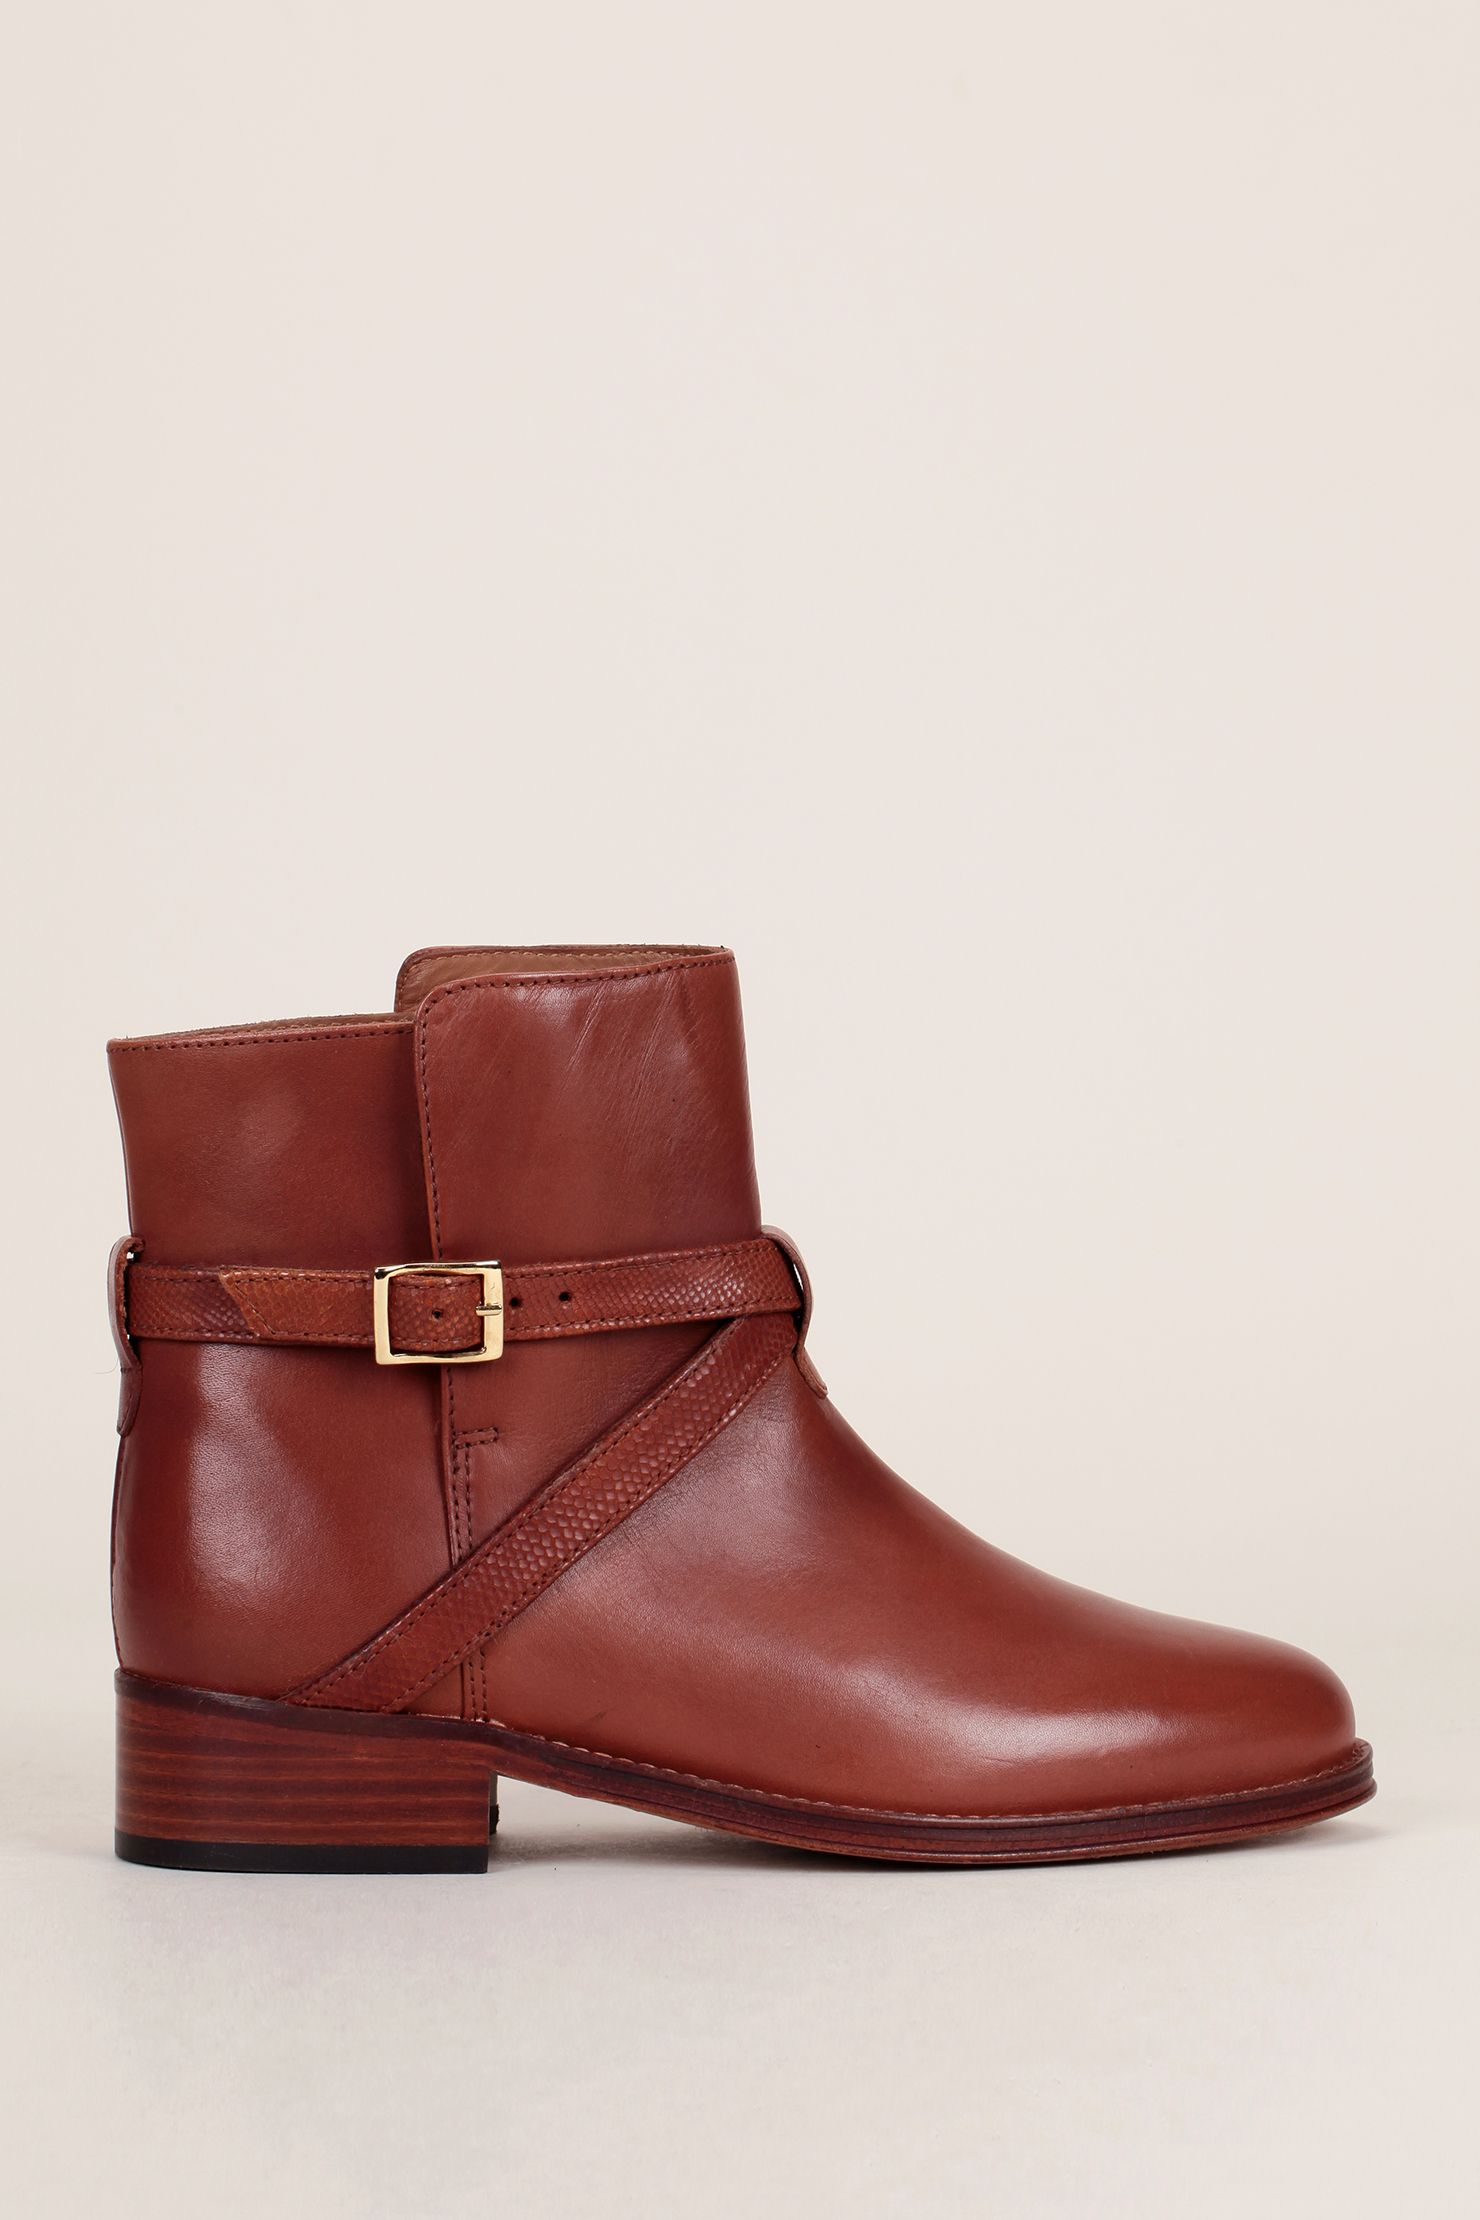 Bottines cuir cognac liens croisés L'invincible - Bobbies